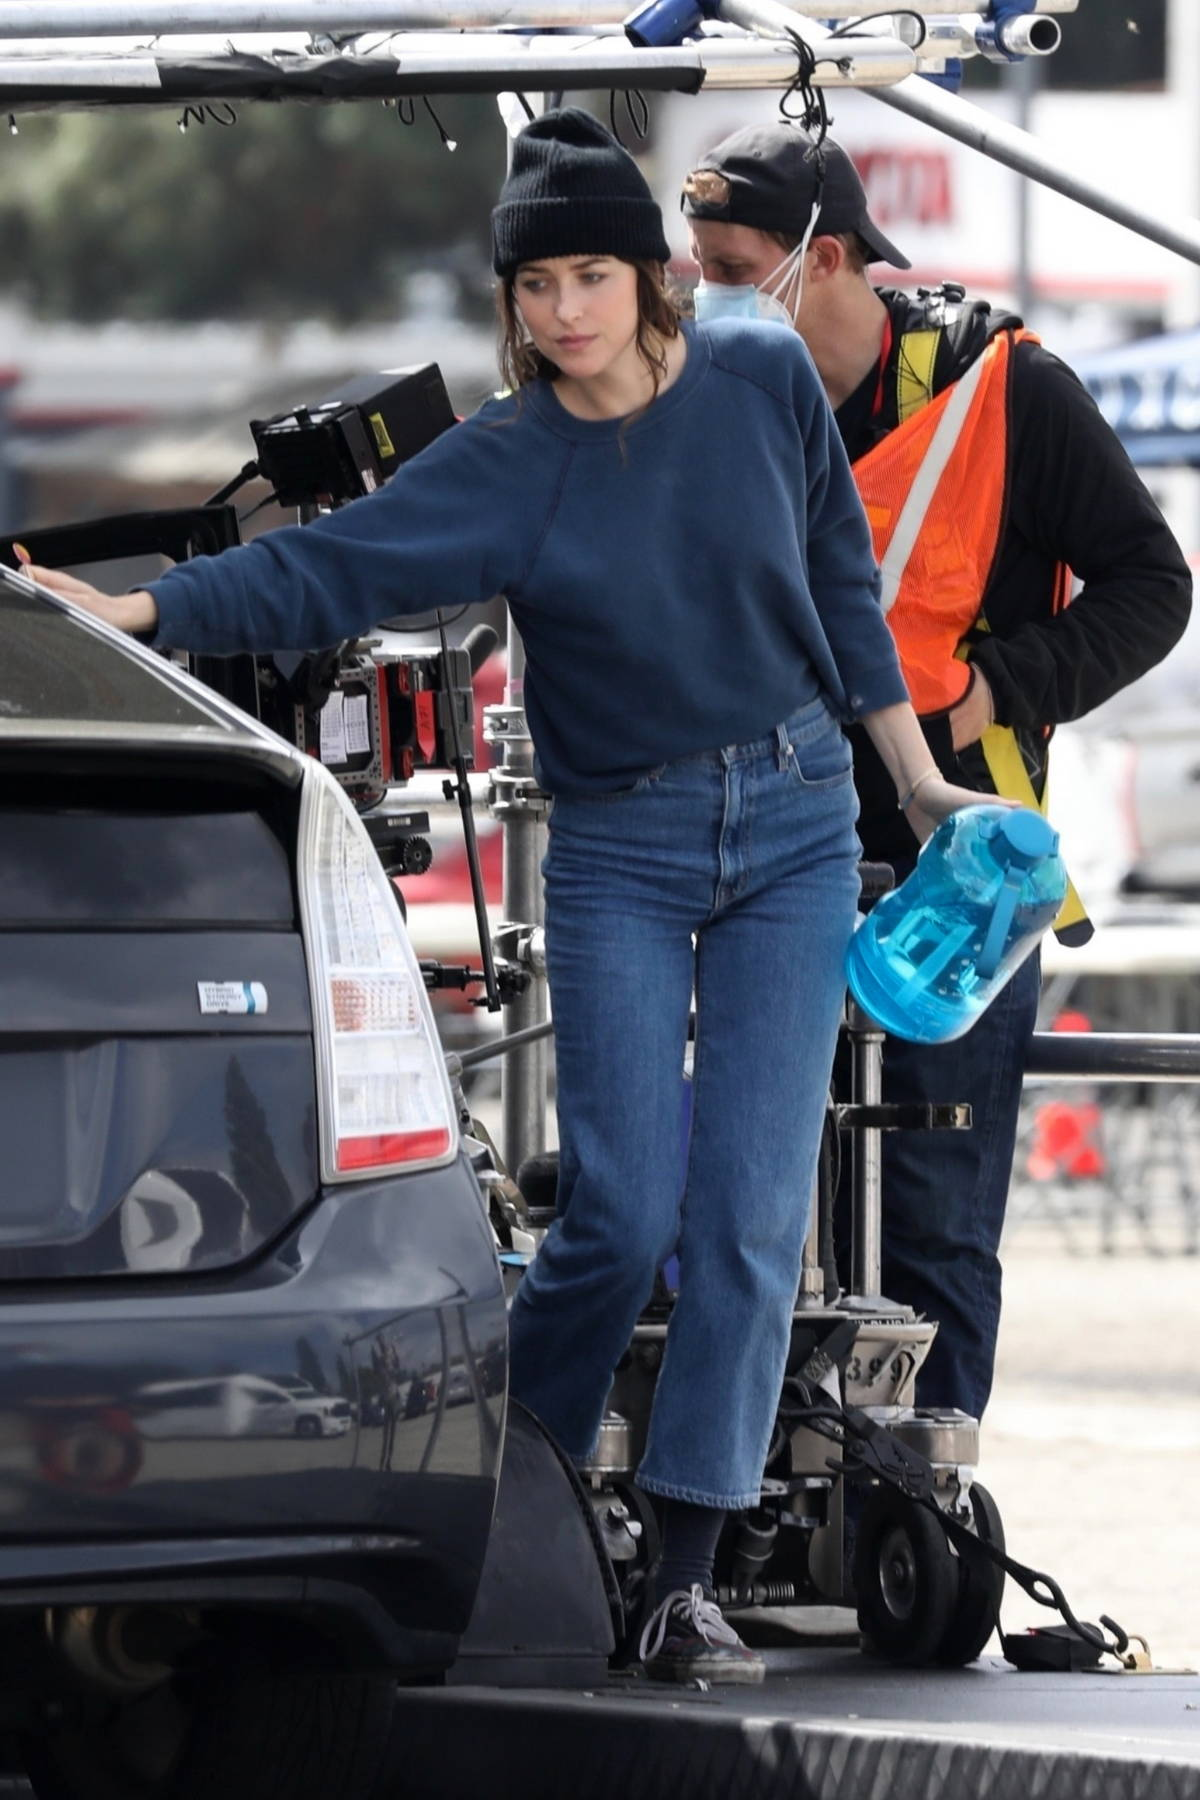 Dakota Johnson enjoys a lollypop on the set of 'Am I OK' while filming a car scene in Los Angeles